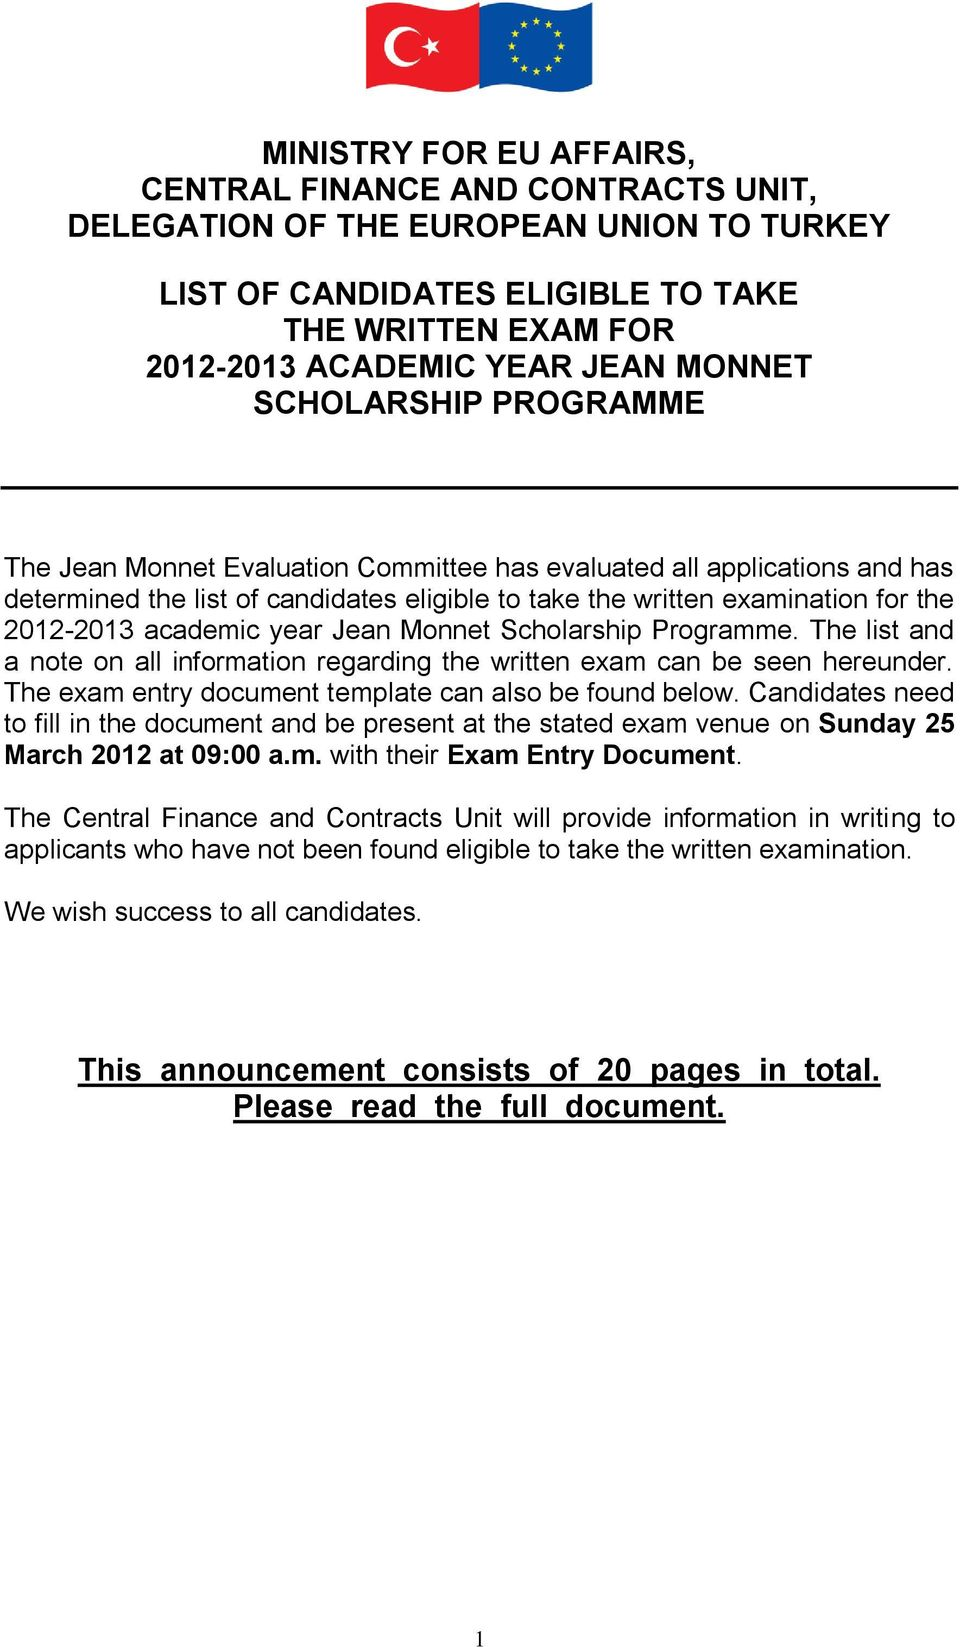 year Jean Monnet Scholarship Programme. The list and a note on all information regarding the written exam can be seen hereunder. The exam entry document template can also be found below.